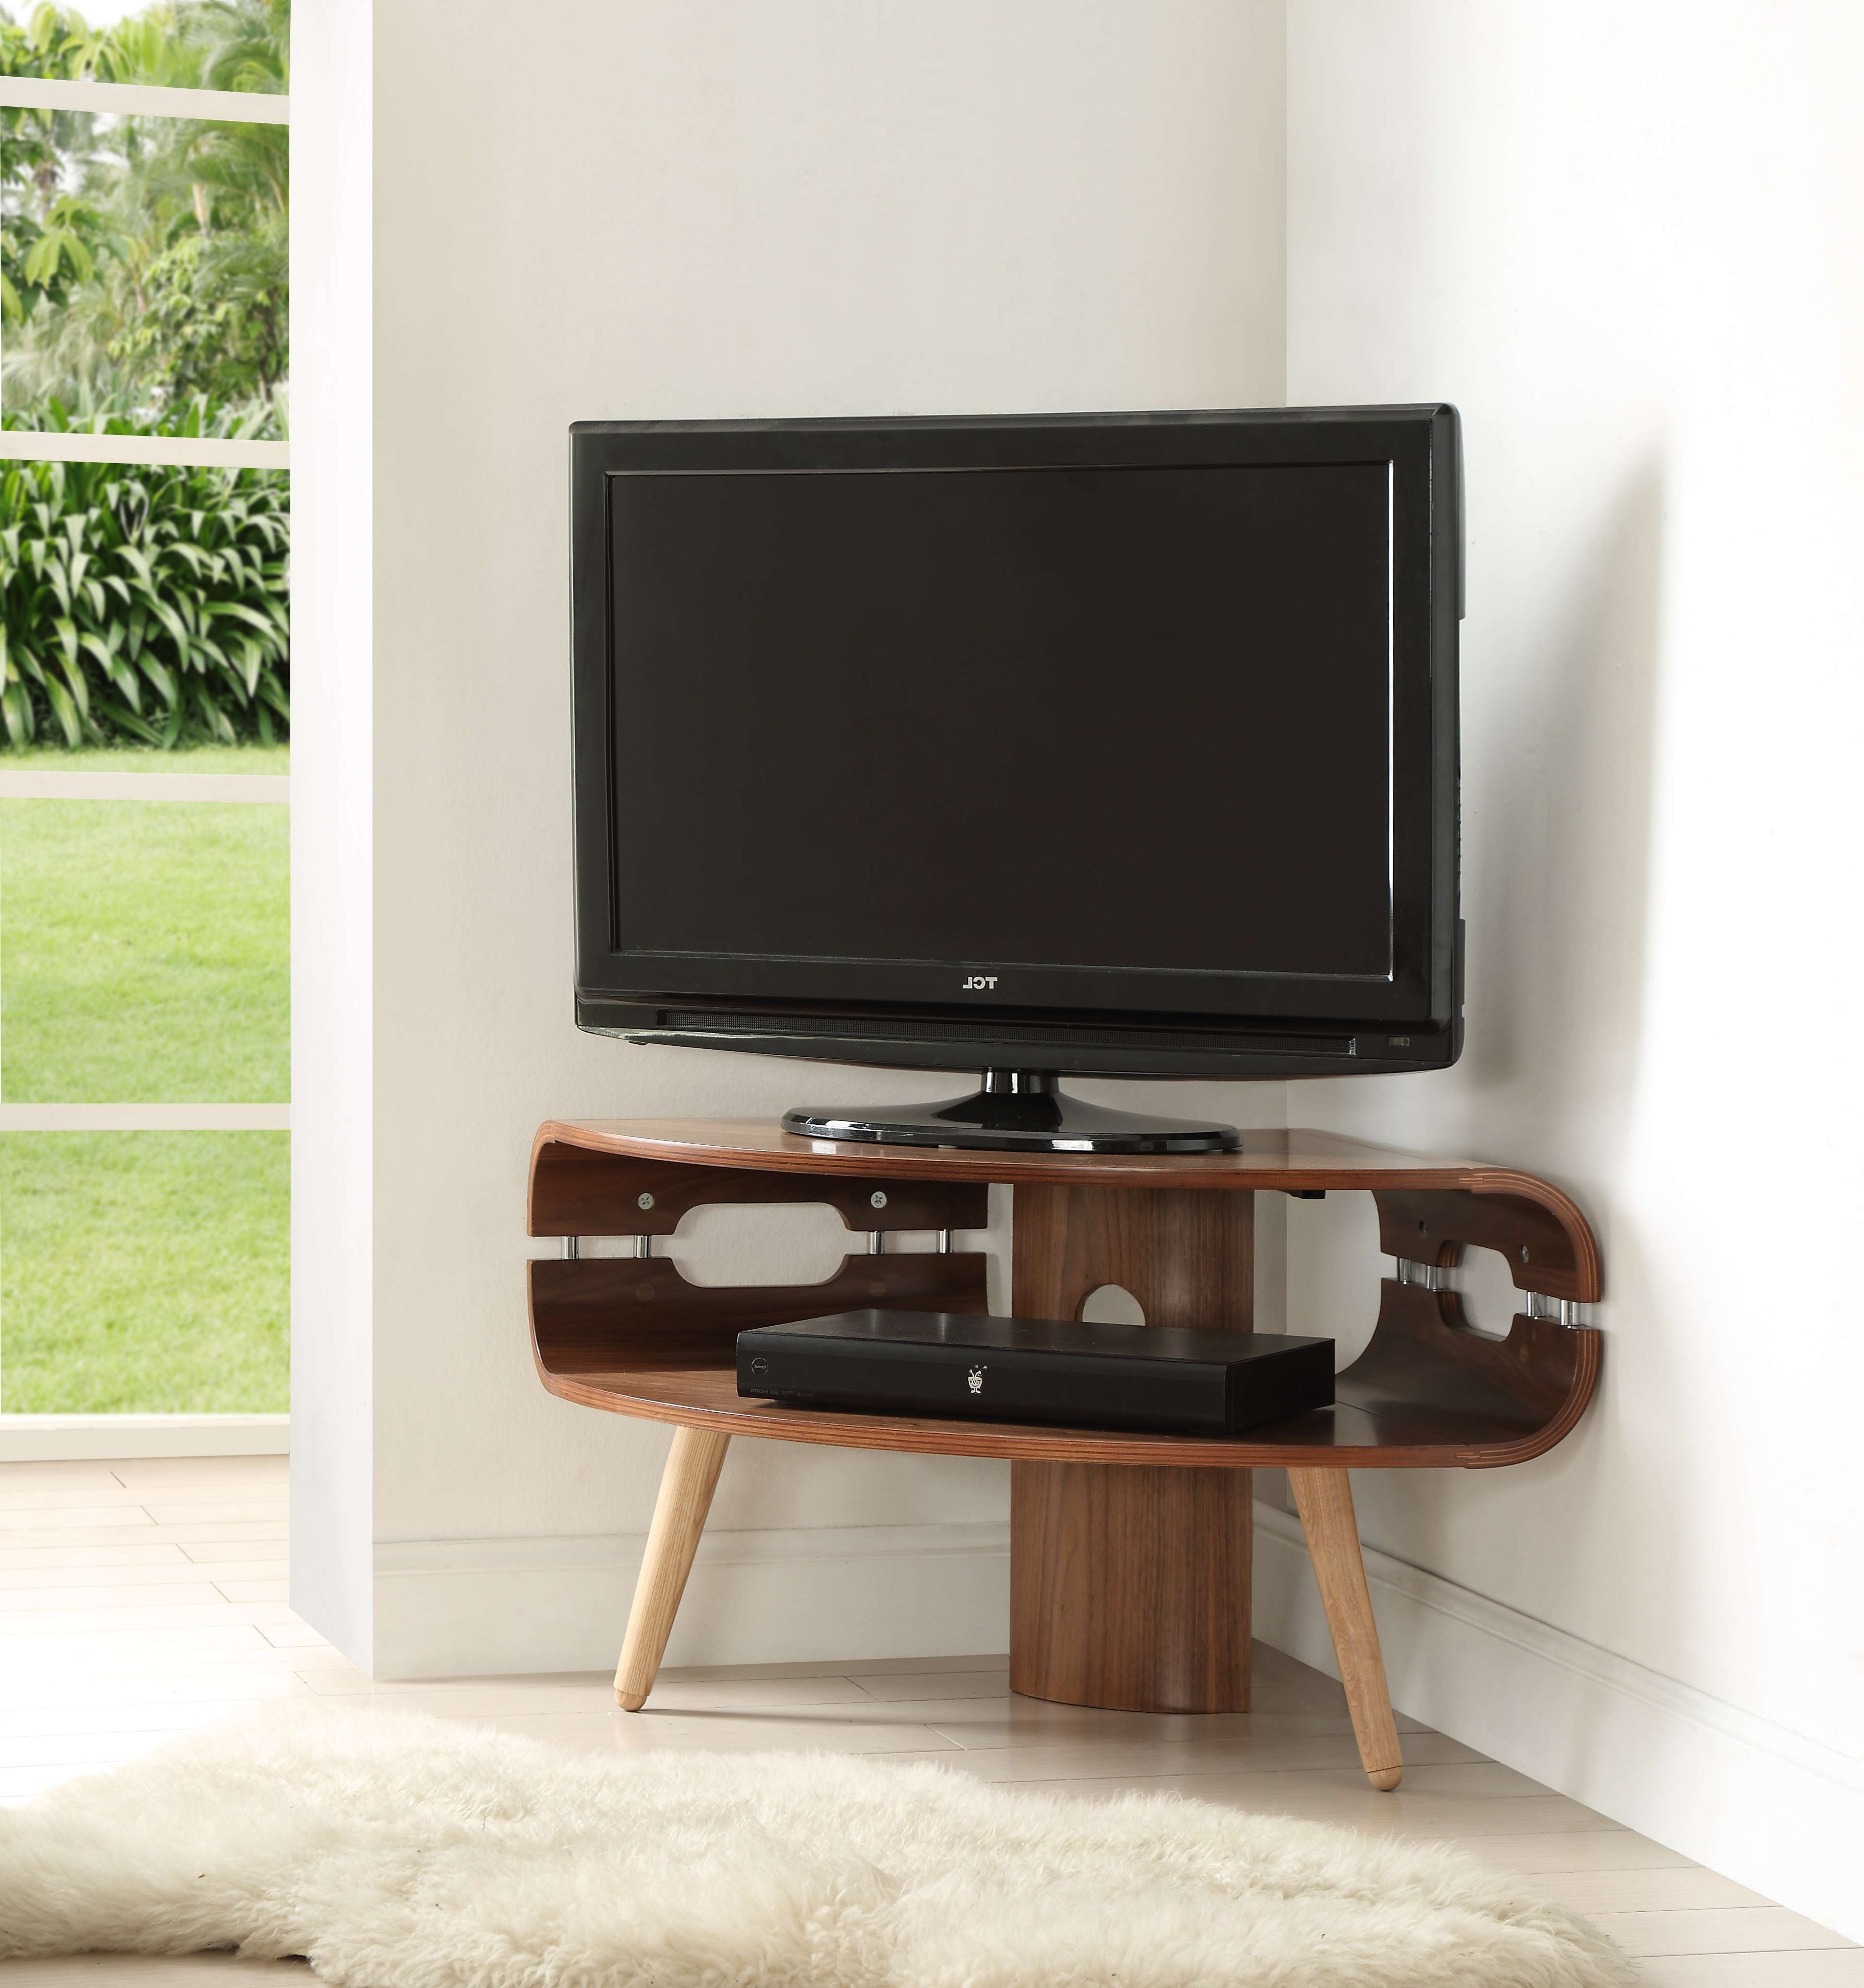 Jf701 Corner Tv Stand – Cooks In Retro Corner Tv Stands (View 5 of 15)